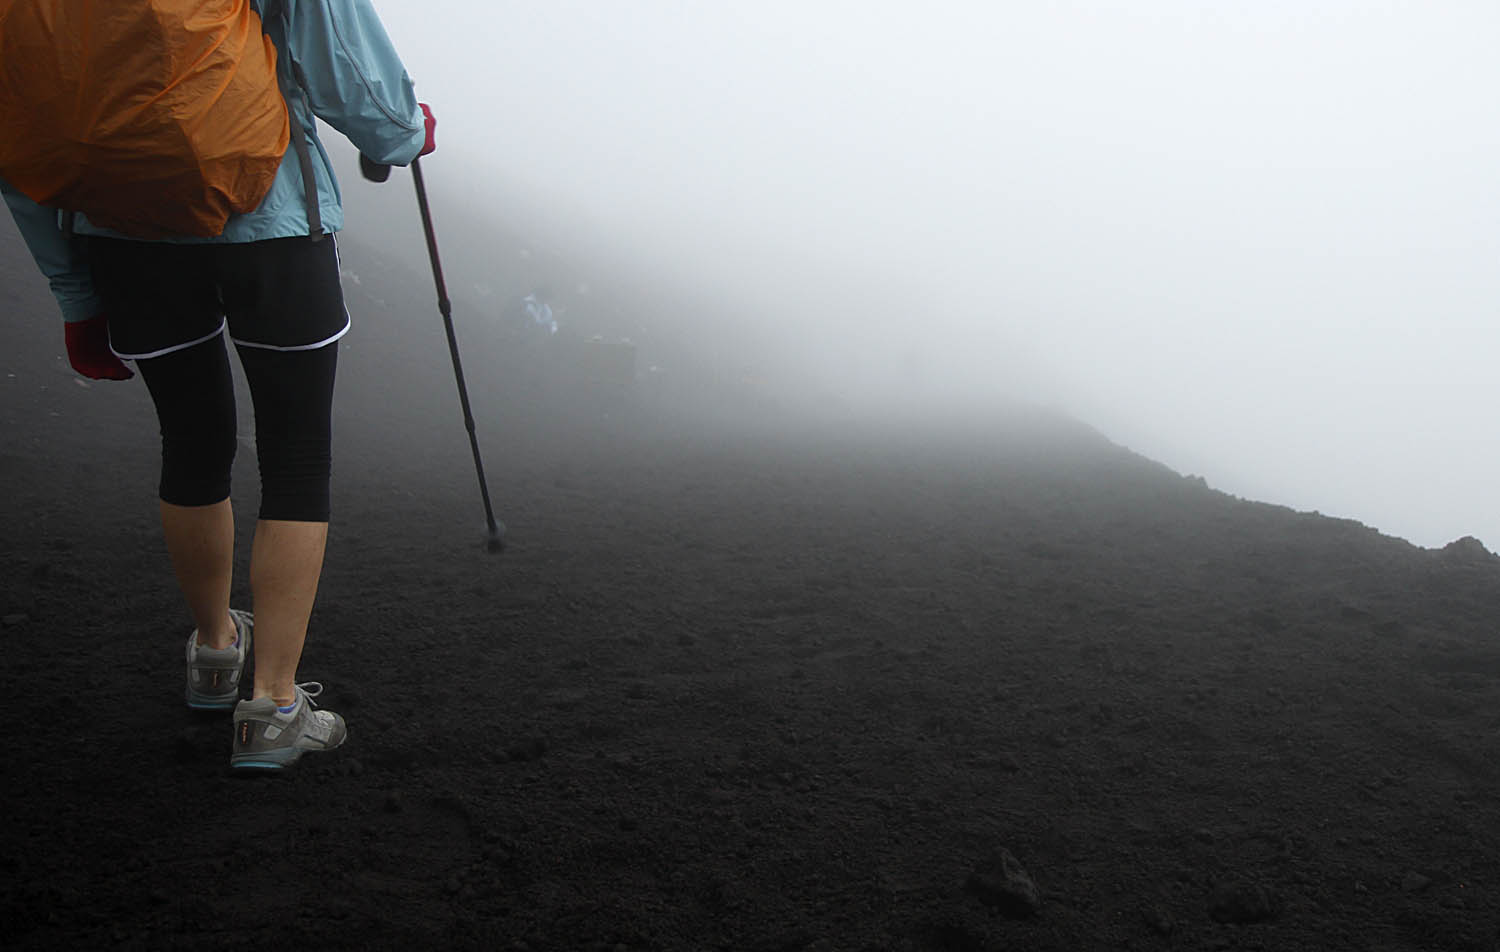 Walking into the fog